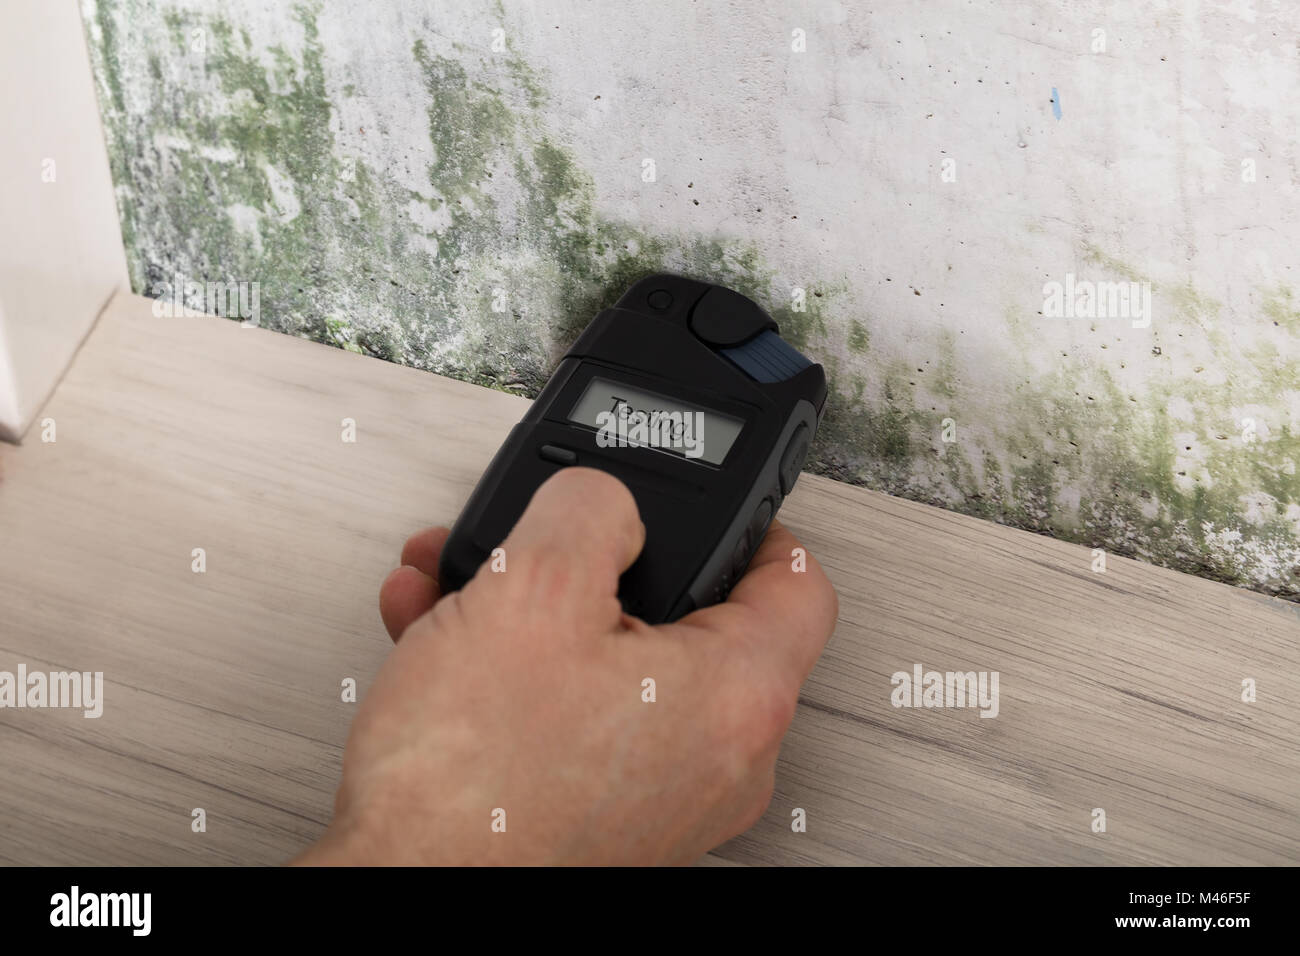 Person Hand Measuring The Wetness Off A Moldy Wall - Stock Image